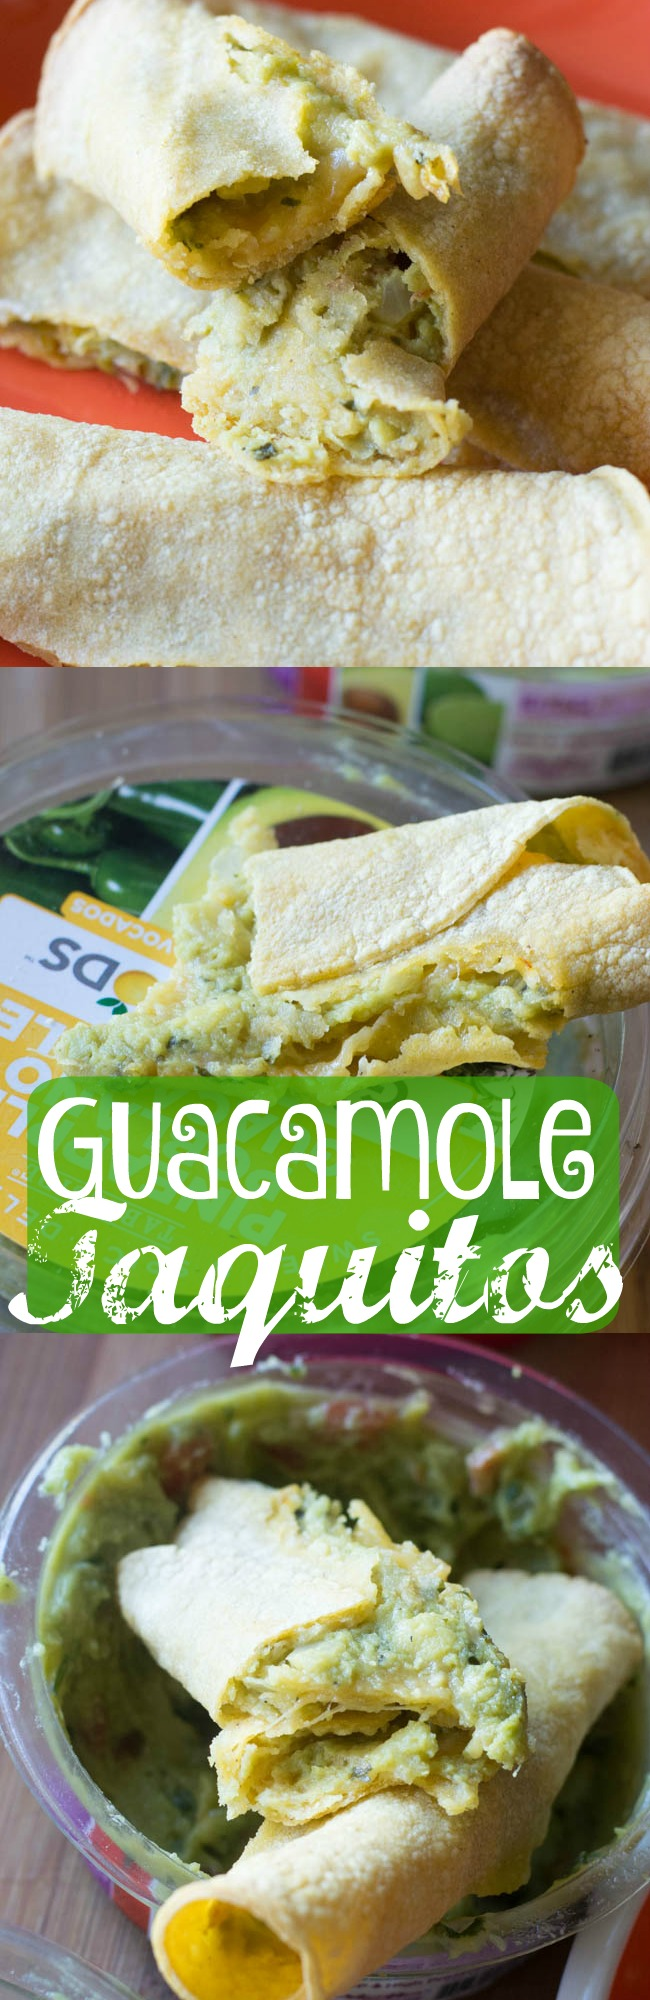 These super easy baked guacamole taquitos are a DELICIOUS appetizer, lunch, or after school snack. They only take three ingredients, and EVERYONE loves them!